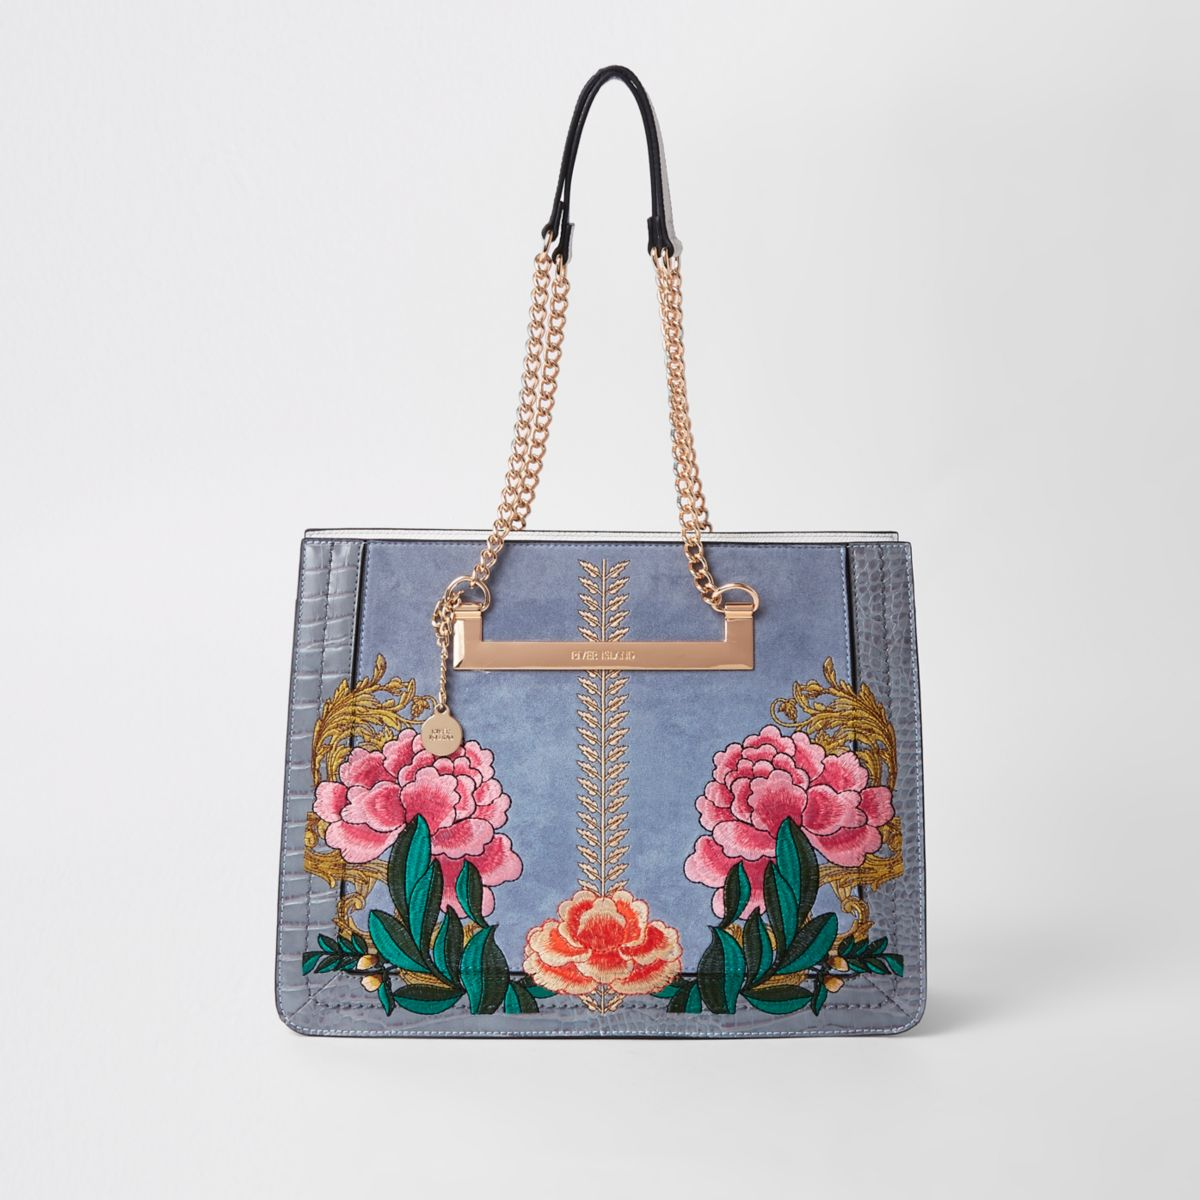 Grey floral embroidered tote bag